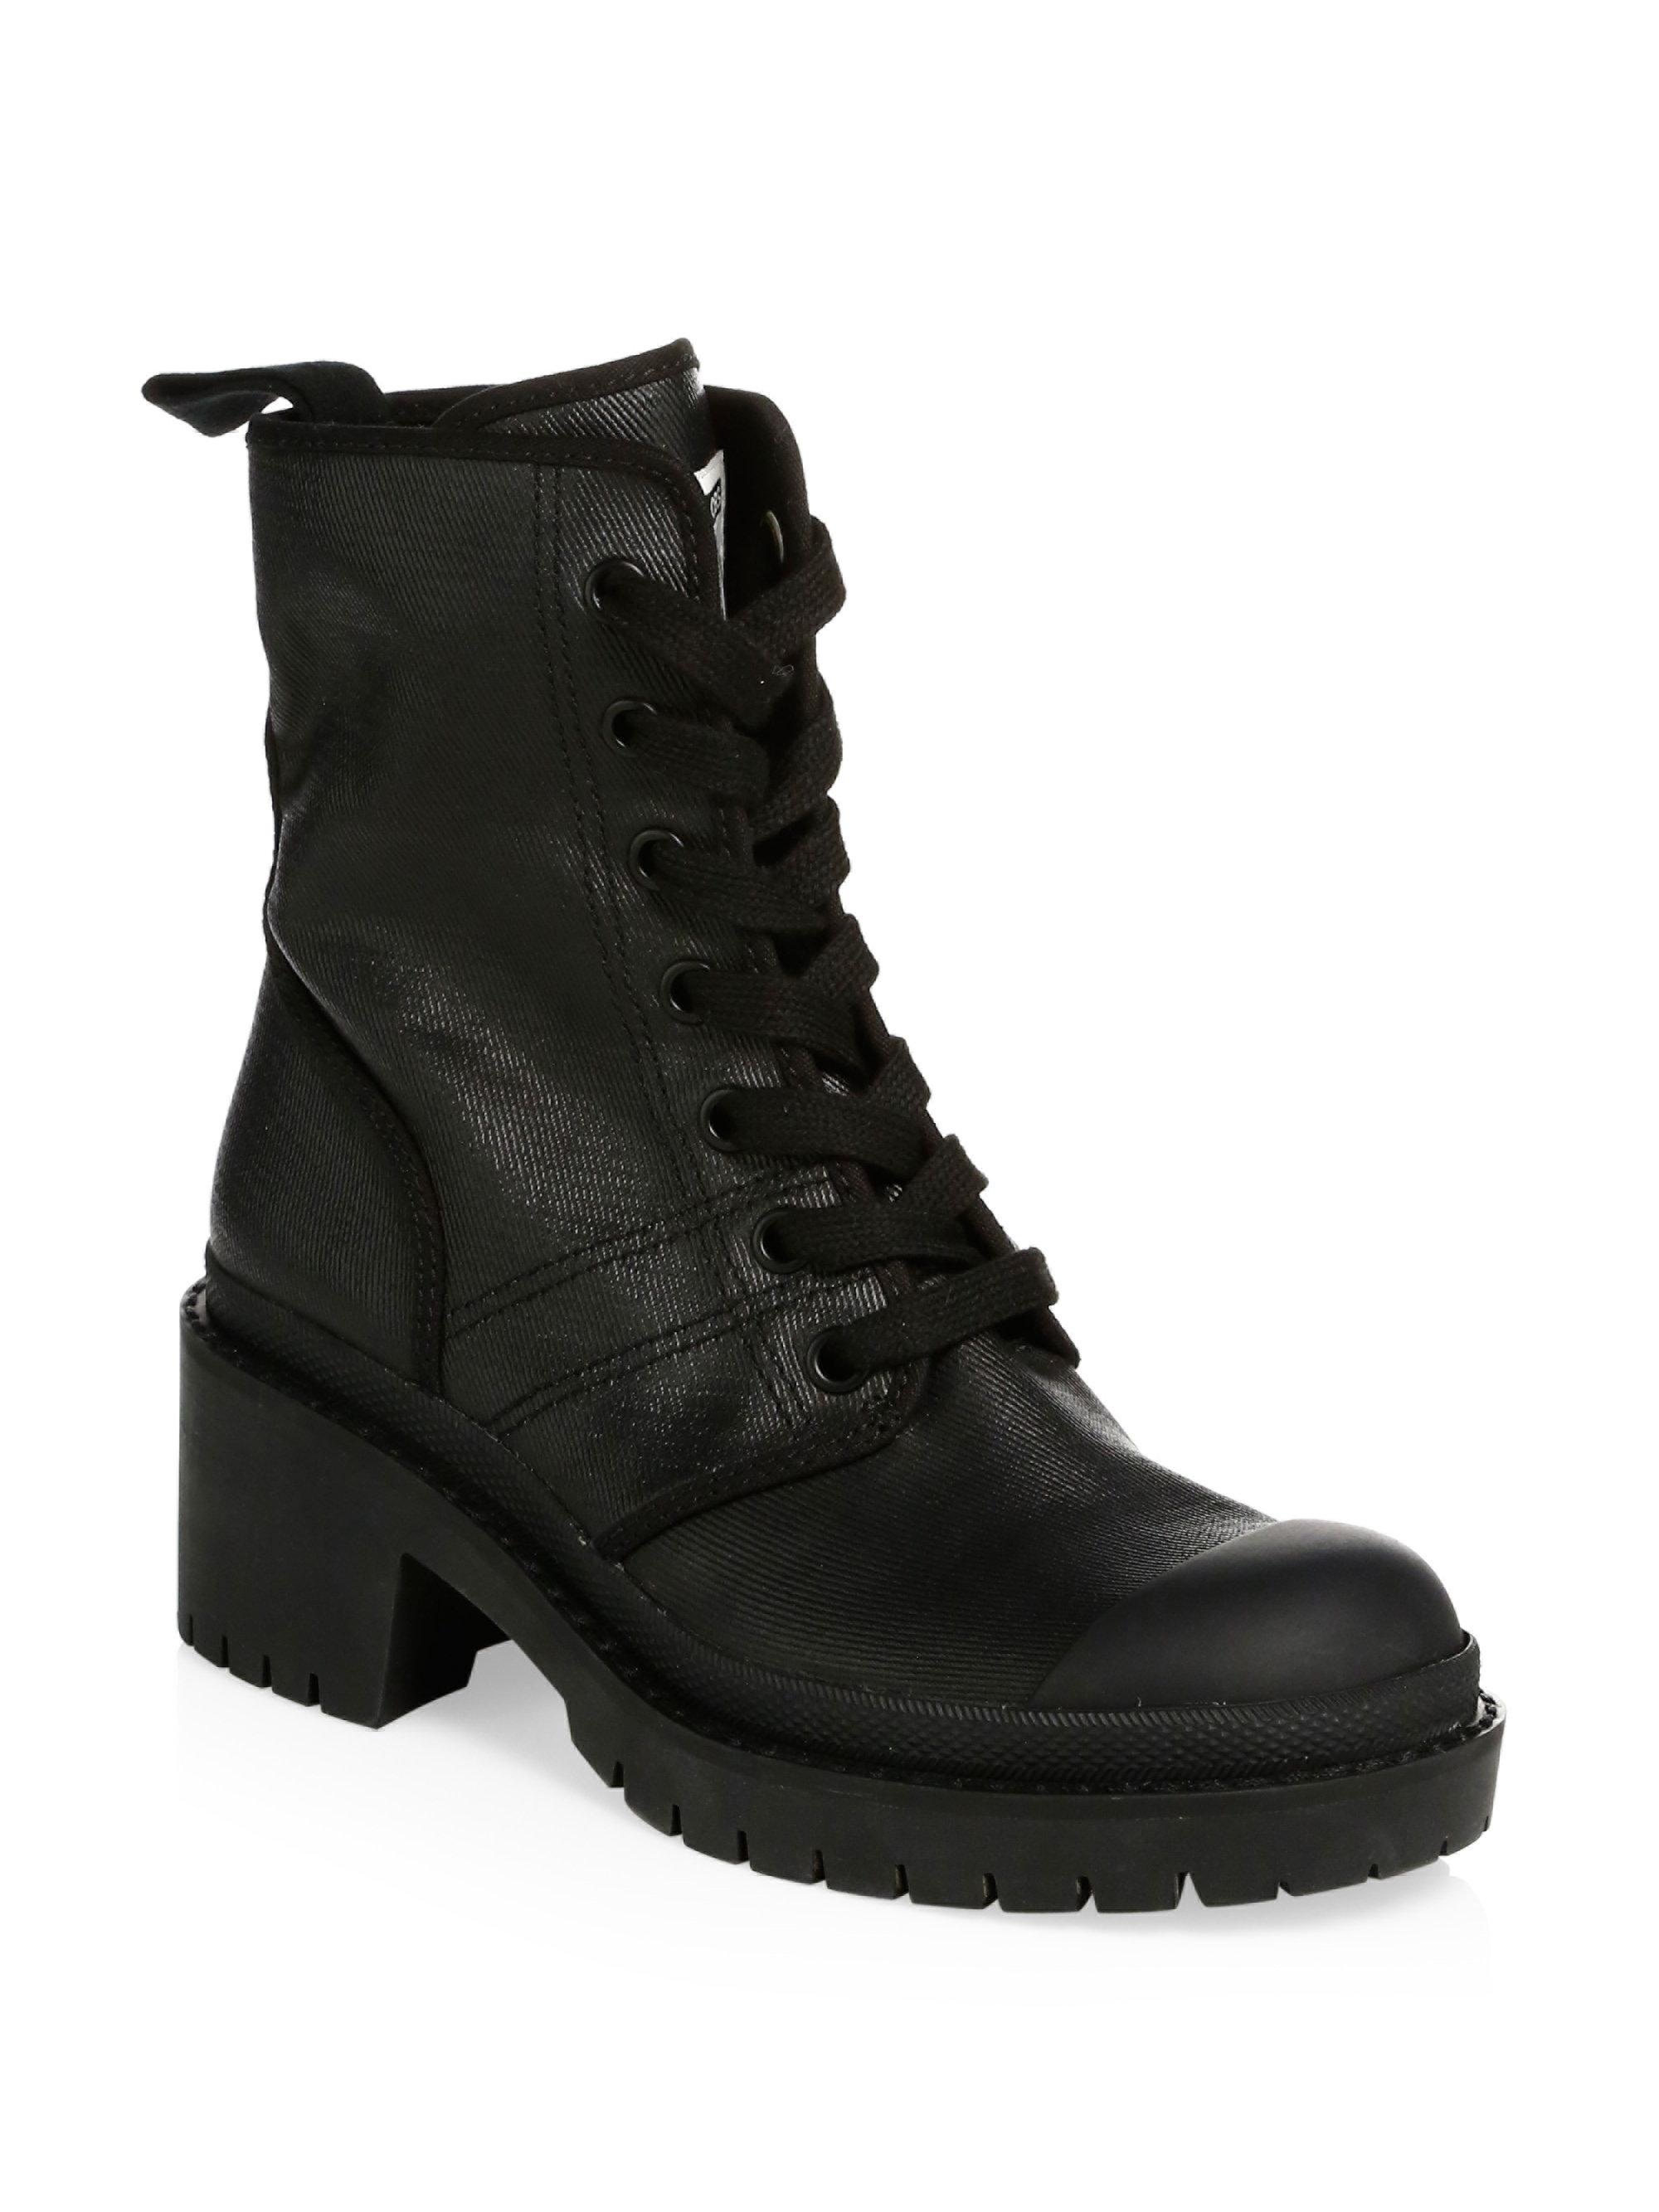 451382a82b8 Lyst - Marc Jacobs Bristol Lace-up Boots in Black for Men